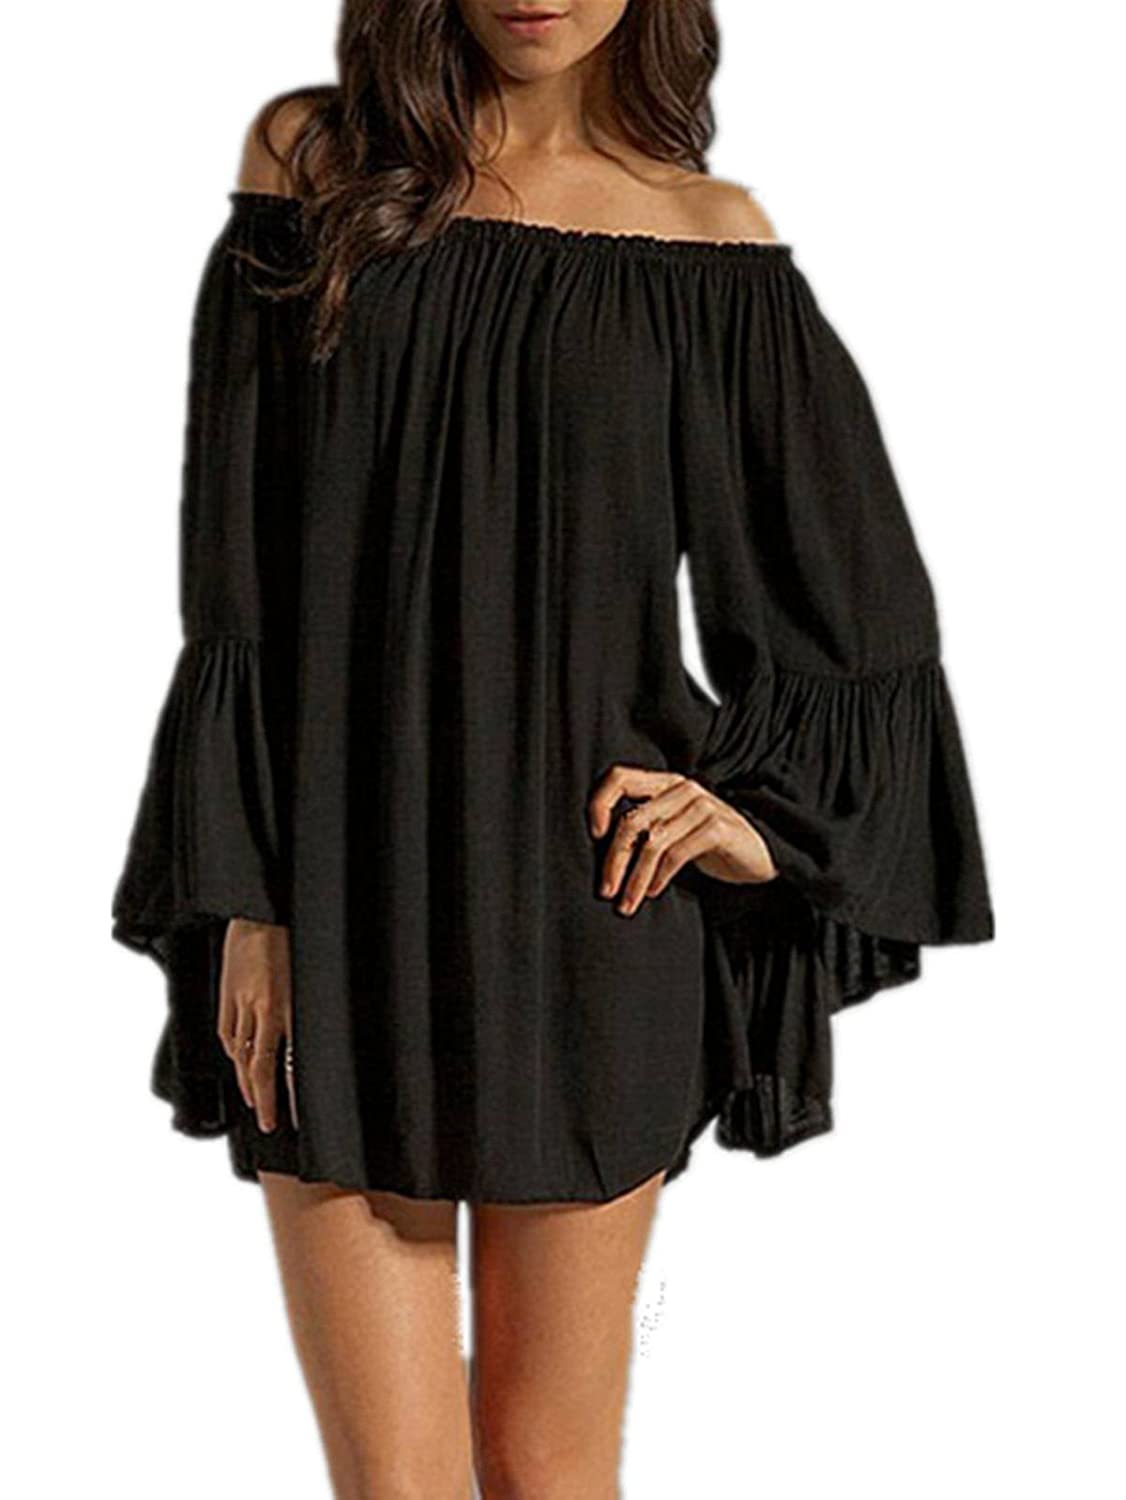 Sexy Ruffle Sleeve Off-Shoulder Chiffon Black Chemise - DeluxeAdultCostumes.com